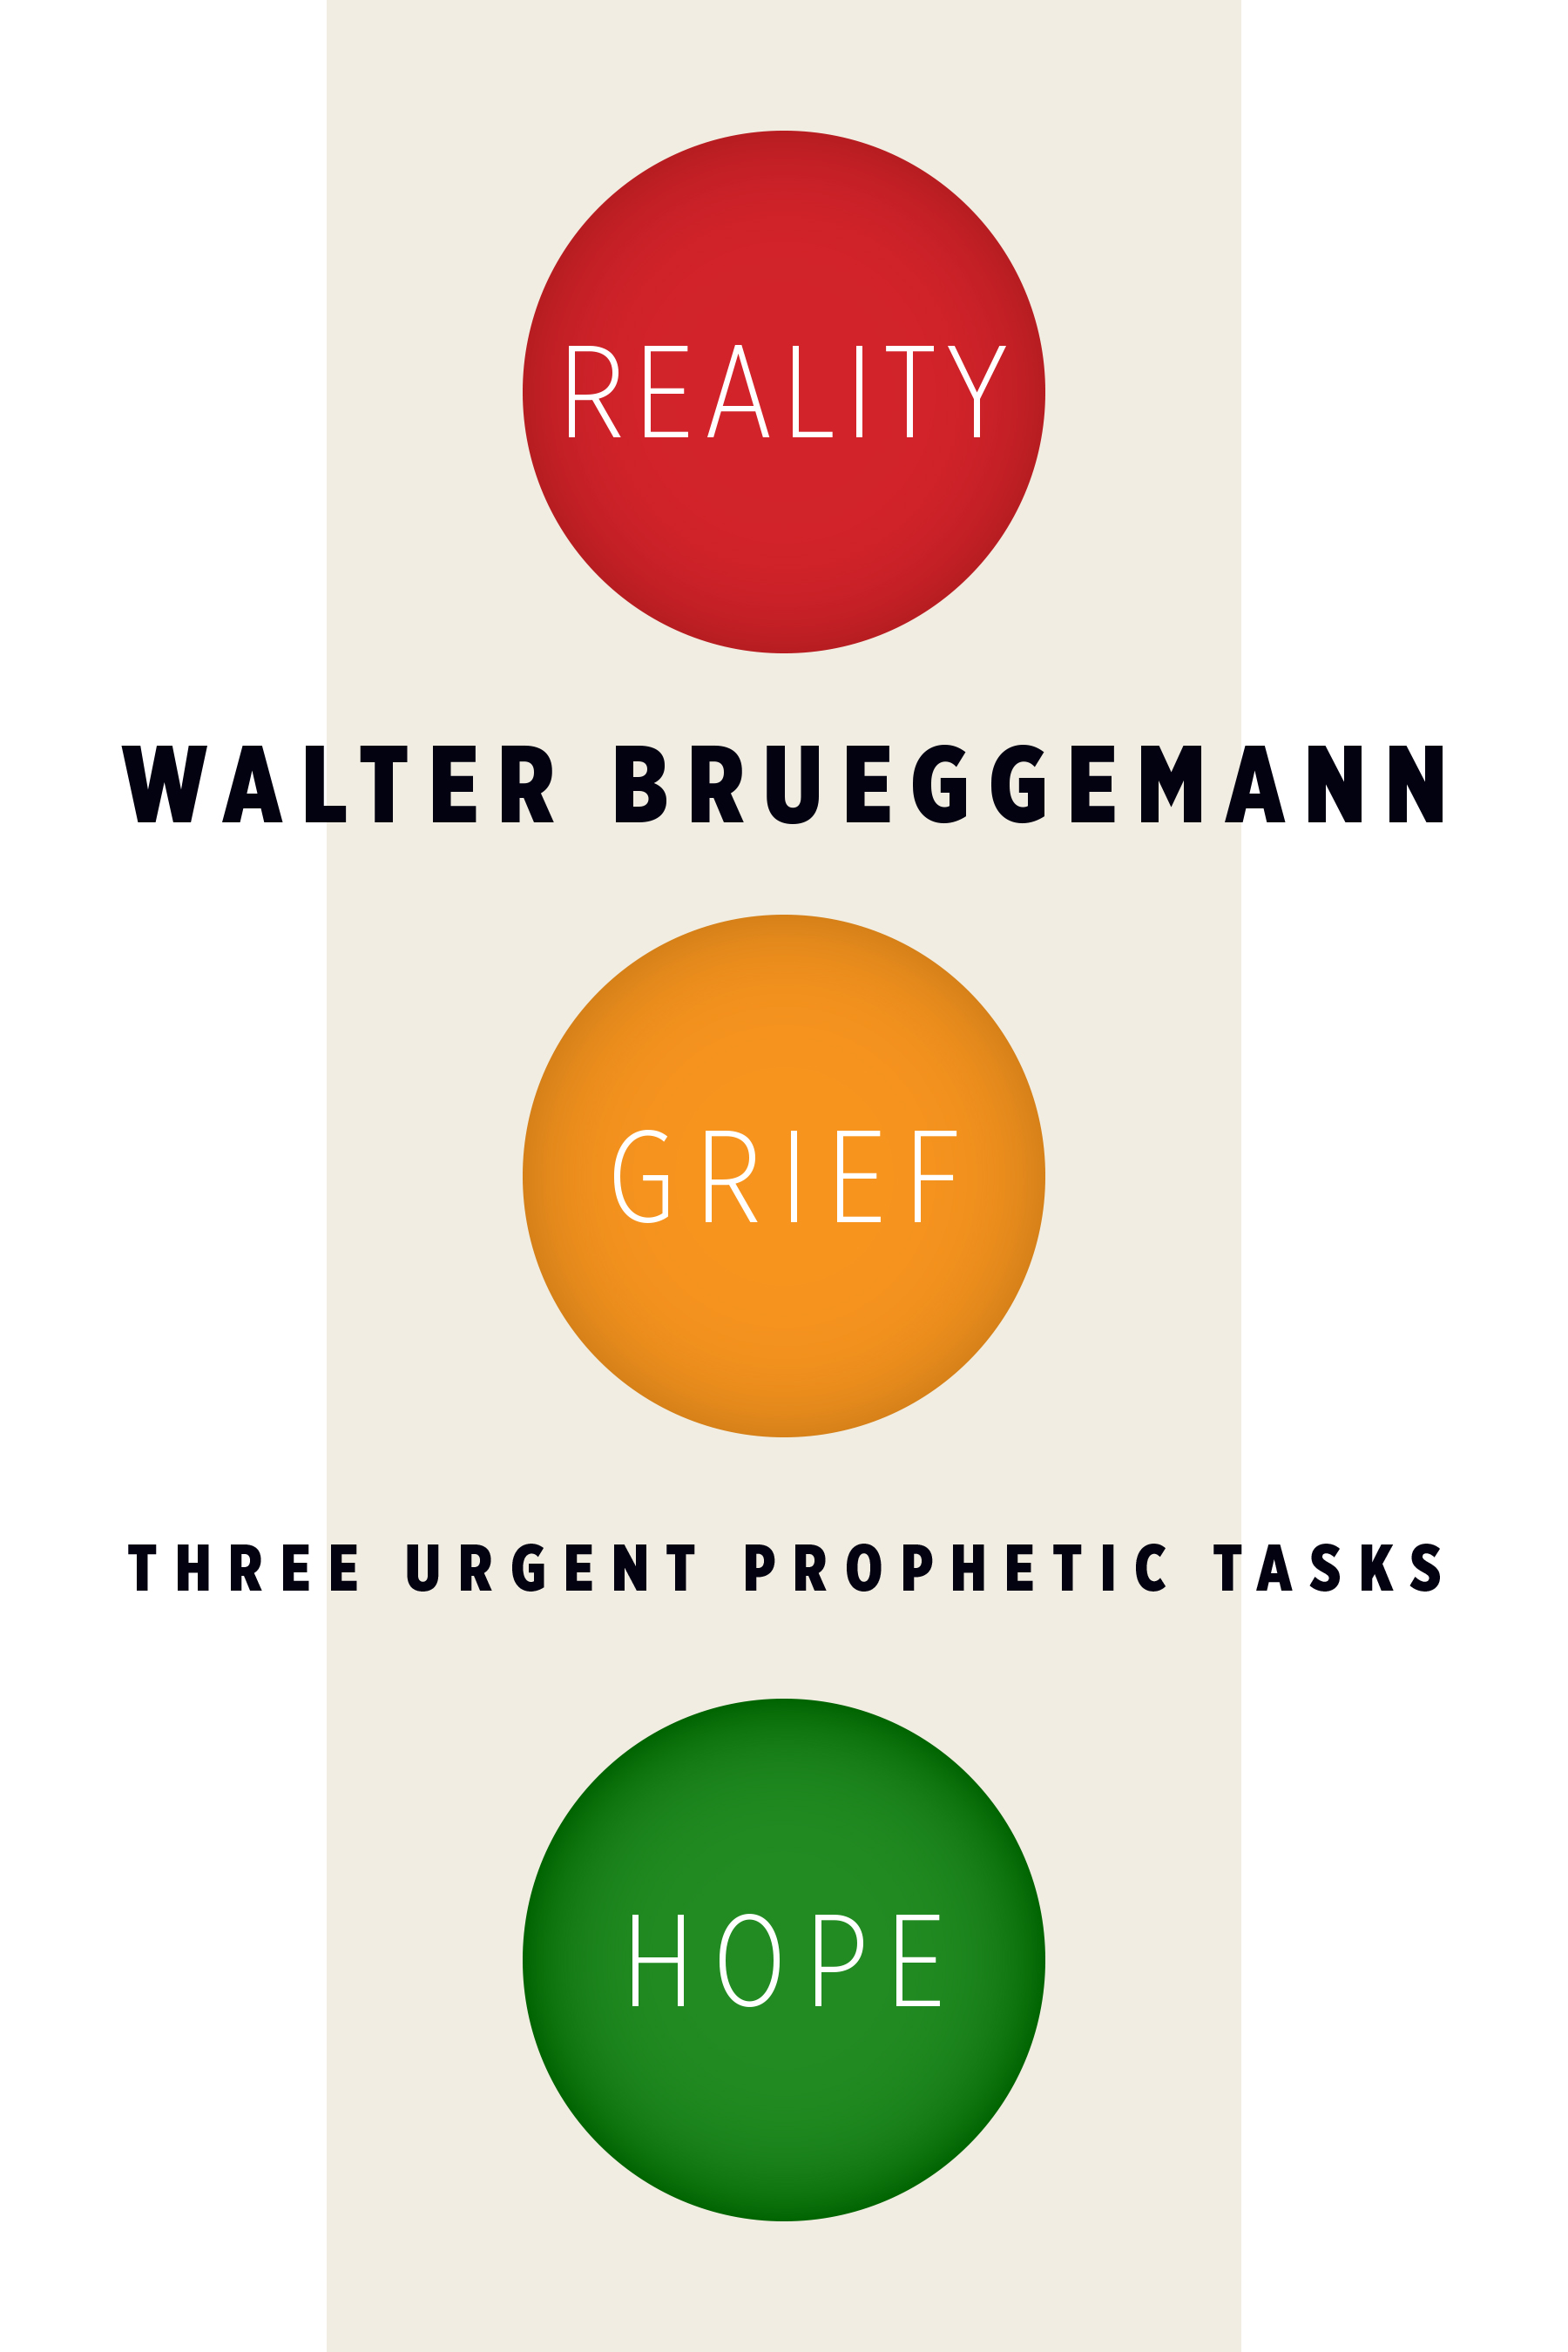 Review of Reality, Grief, Hope: Three Urgent Prophetic Tasks